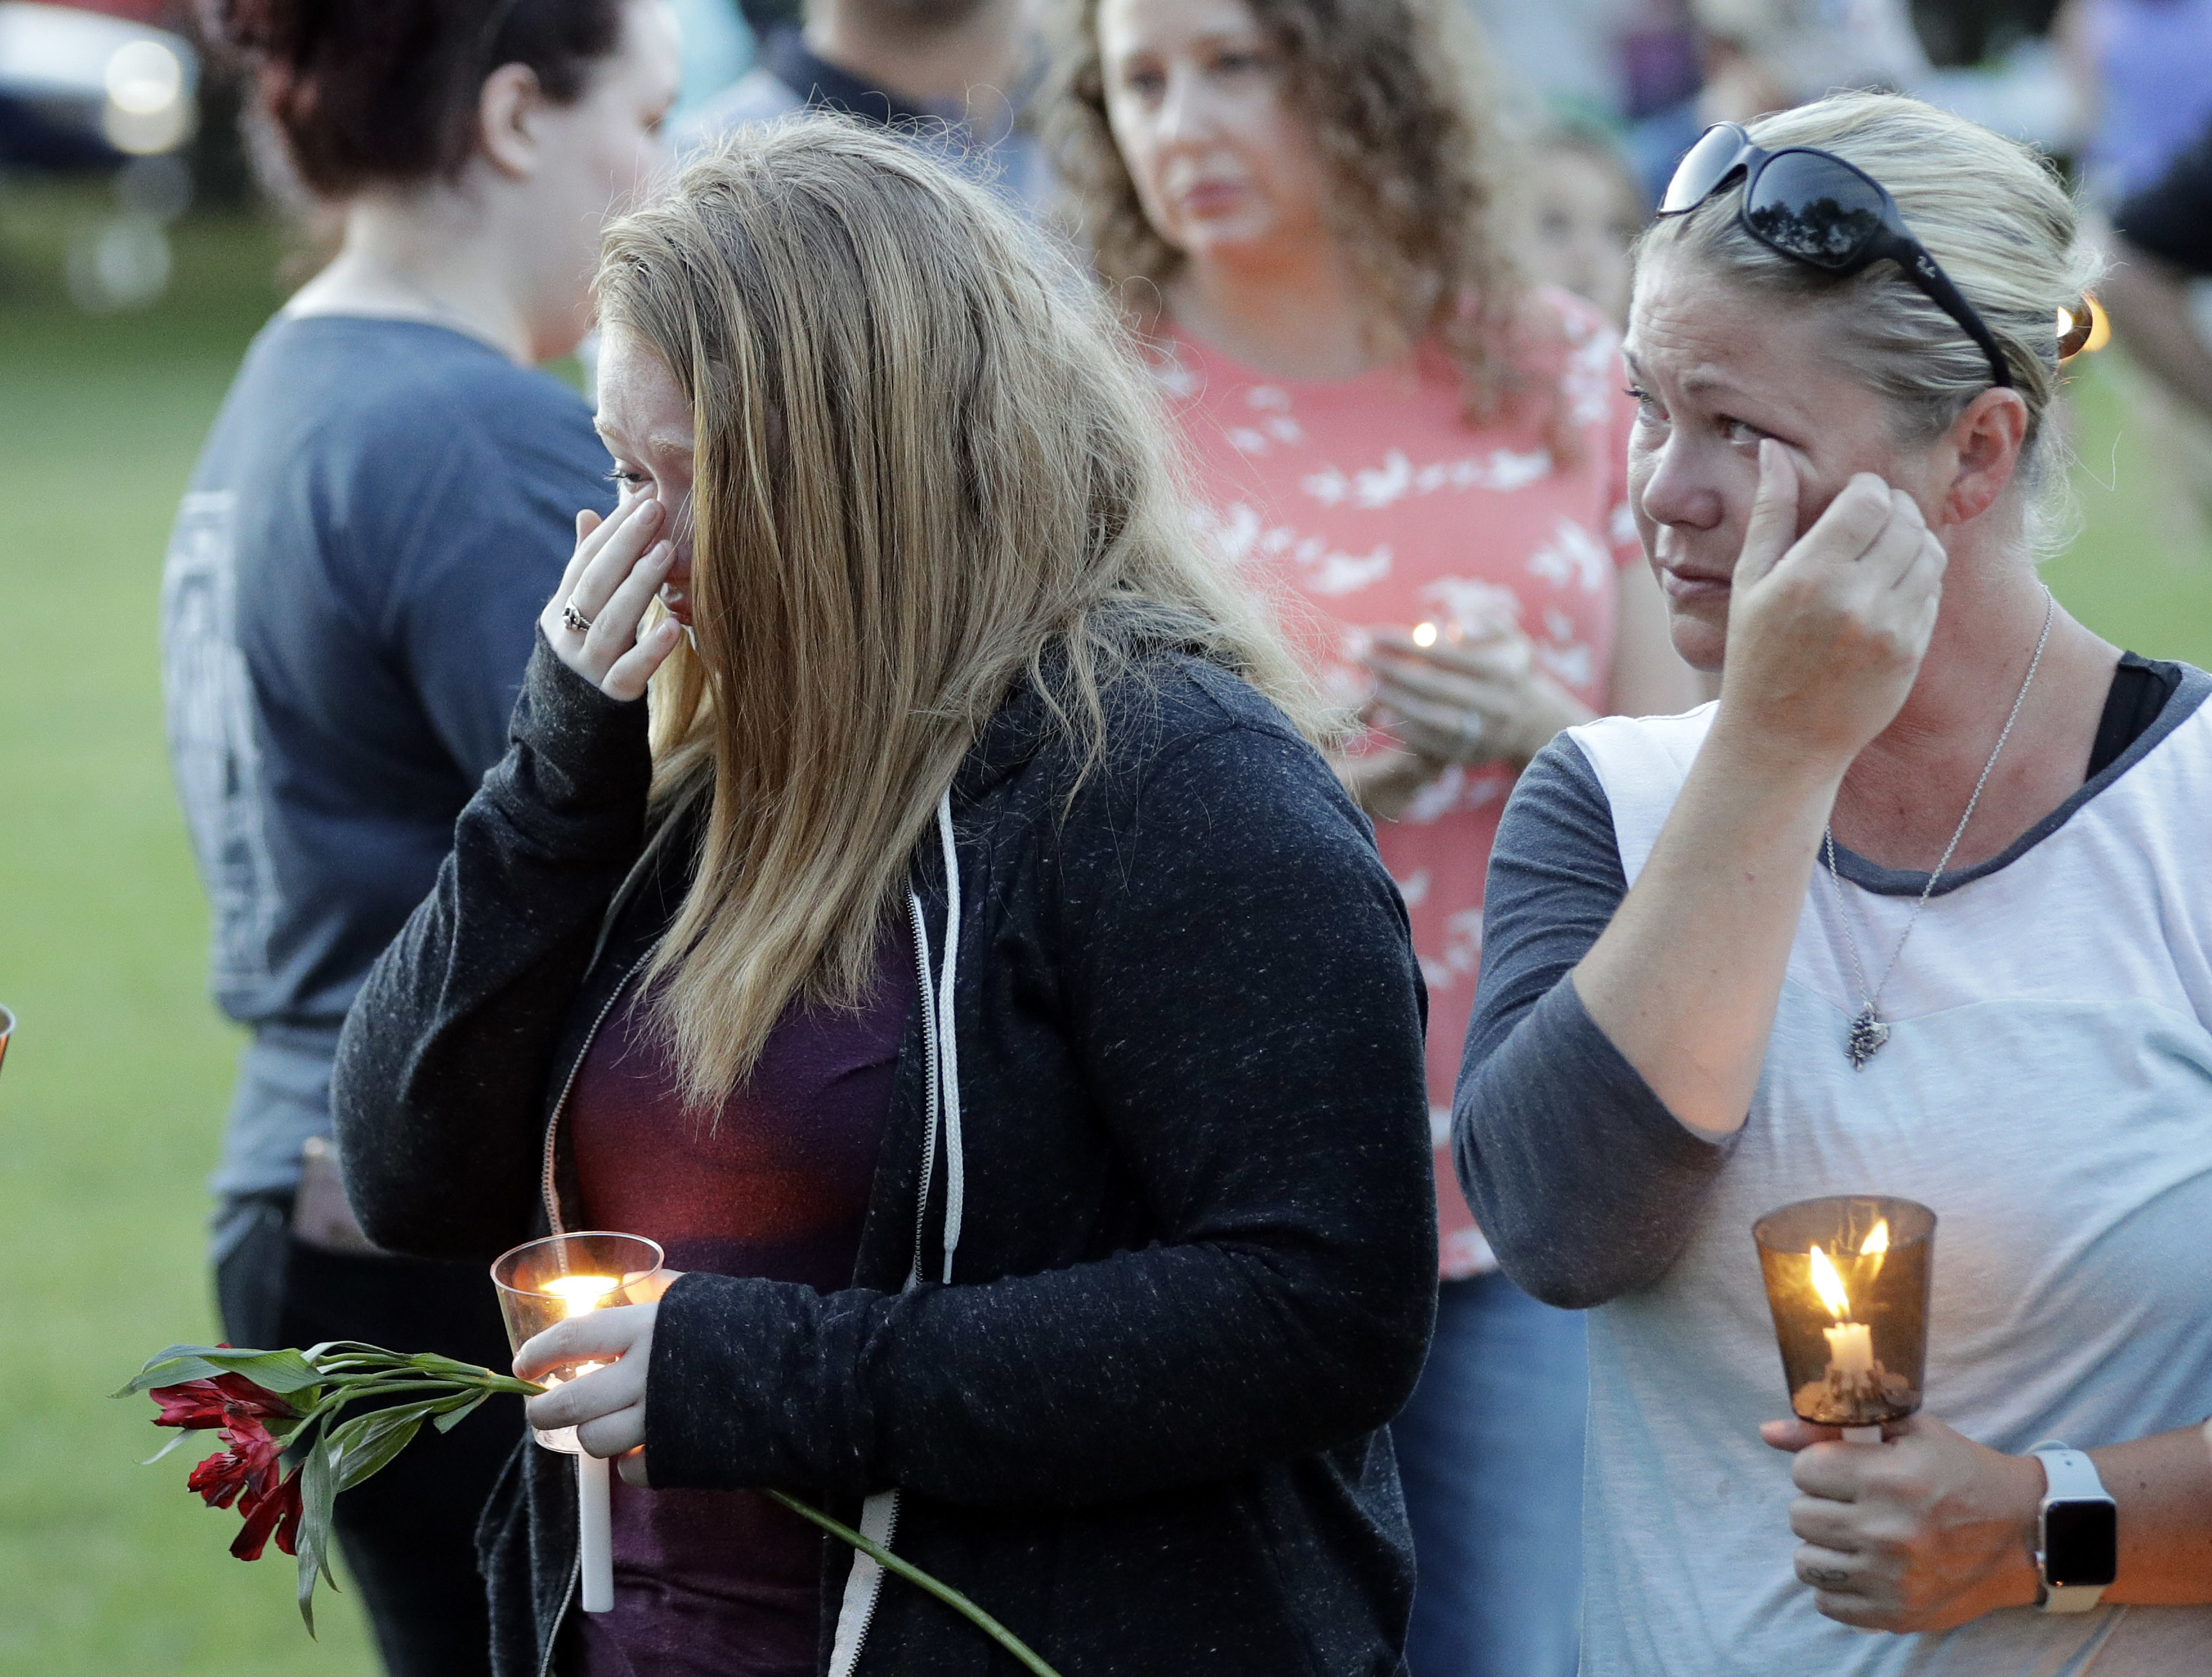 <div class='meta'><div class='origin-logo' data-origin='AP'></div><span class='caption-text' data-credit='AP'>Santa Fe High School freshman Kylie Trochesset, left, and her mother, Ashlee, wipe away tears during a prayer vigil. (AP Photo/David J. Phillip)</span></div>